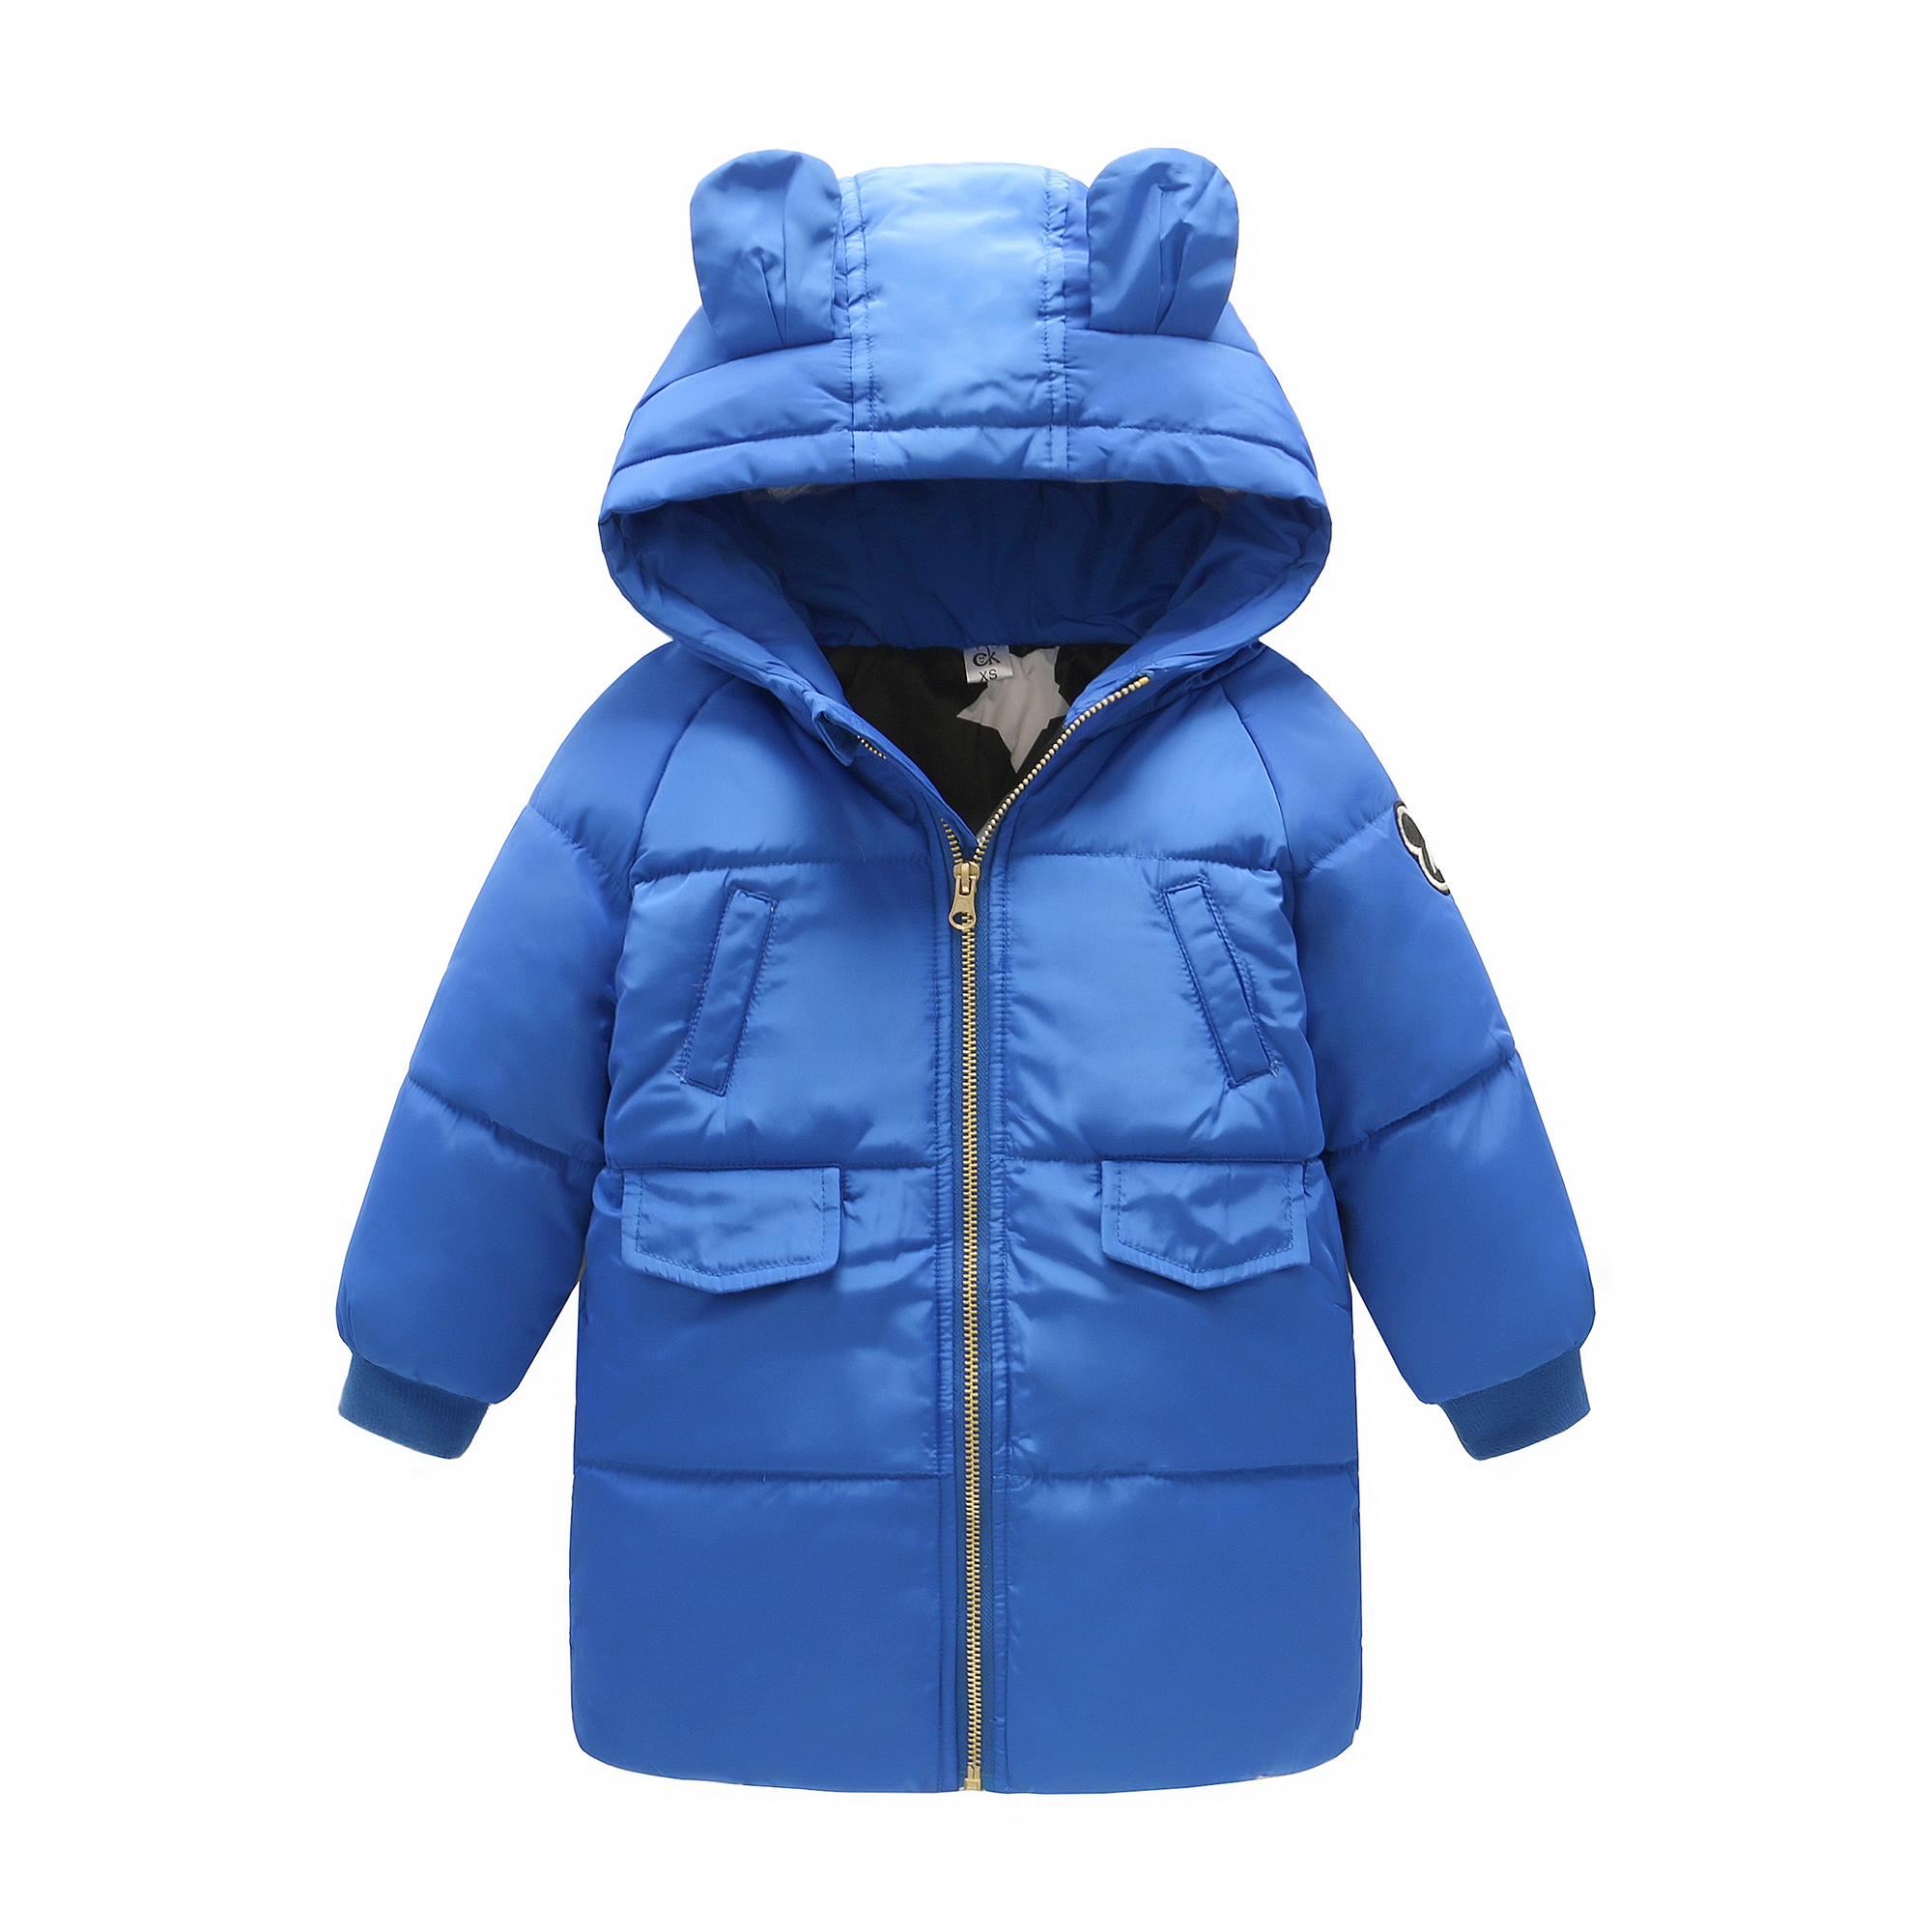 2017 winter children midem long cute hooded thicken jackets girls wadded trench coats kids parkas down boys outdoor coats years 2017 children jackets for boys girls winter down cotton coats kids thickening wadded jacket hooded parkas child coat